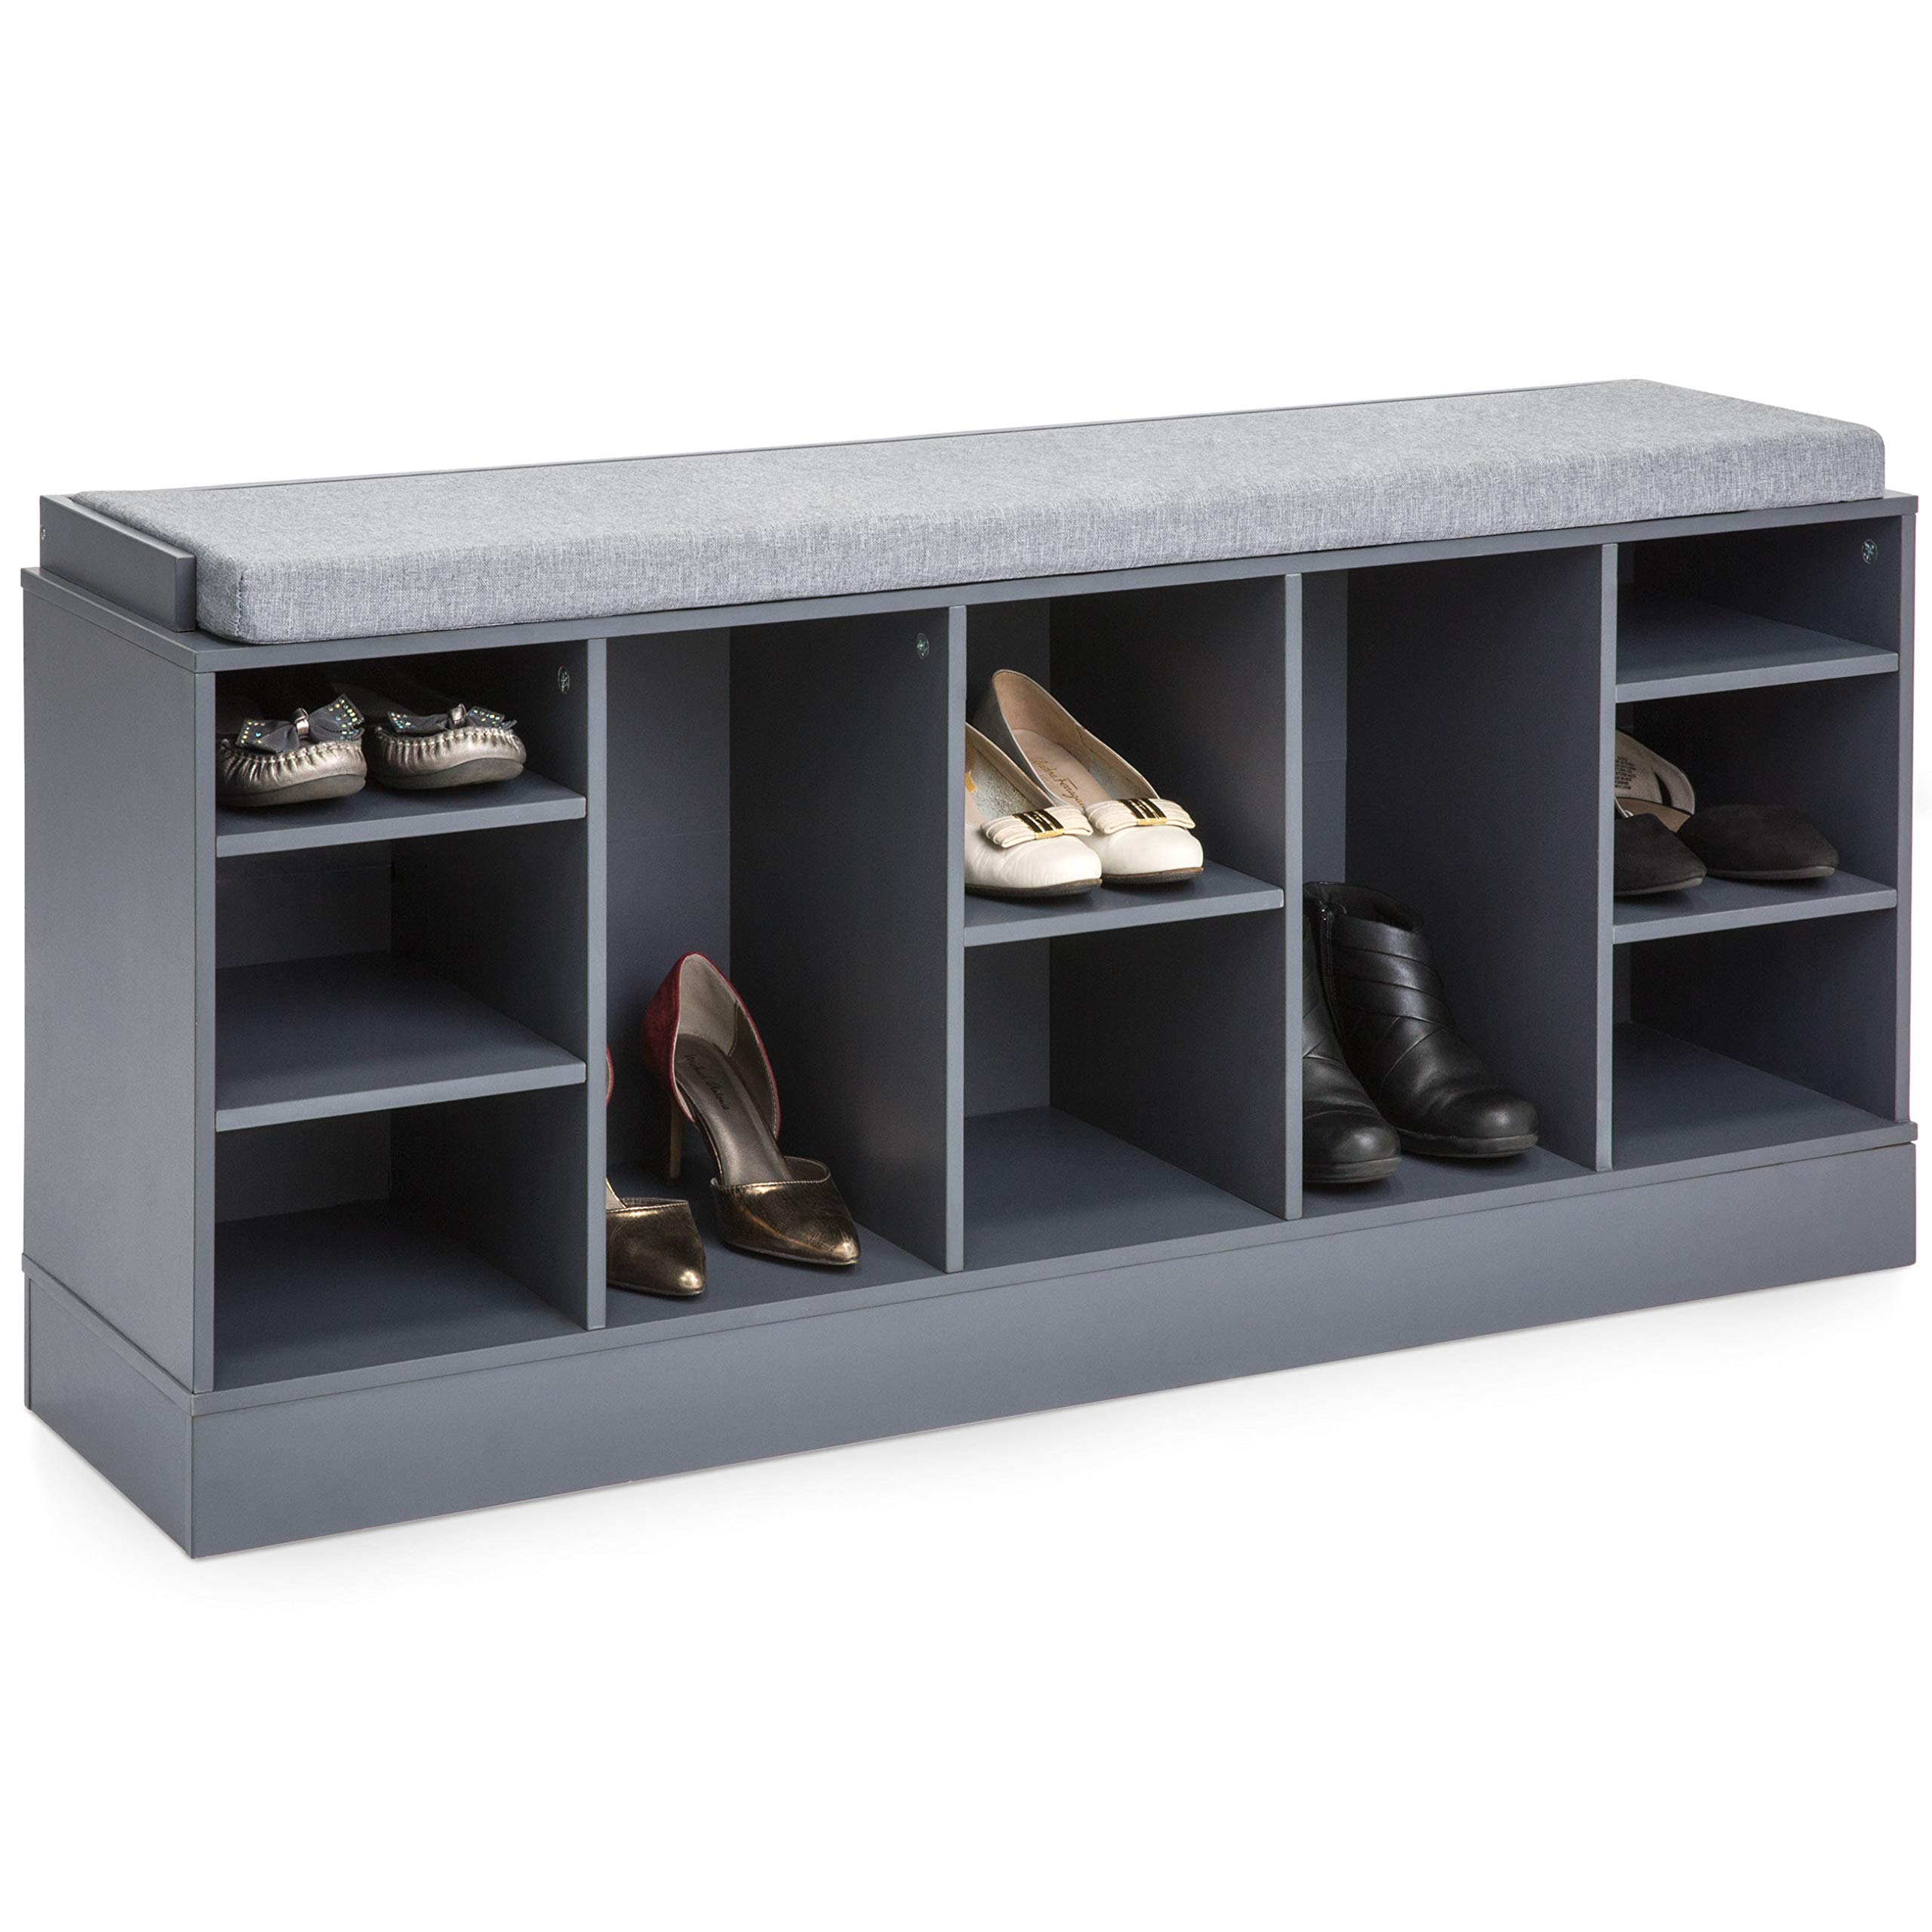 Best Choice Products Shoe Storage Organization Rack Bench for Entryway, Bedroom w/Padded Seat, 10 Cubbies - Gray